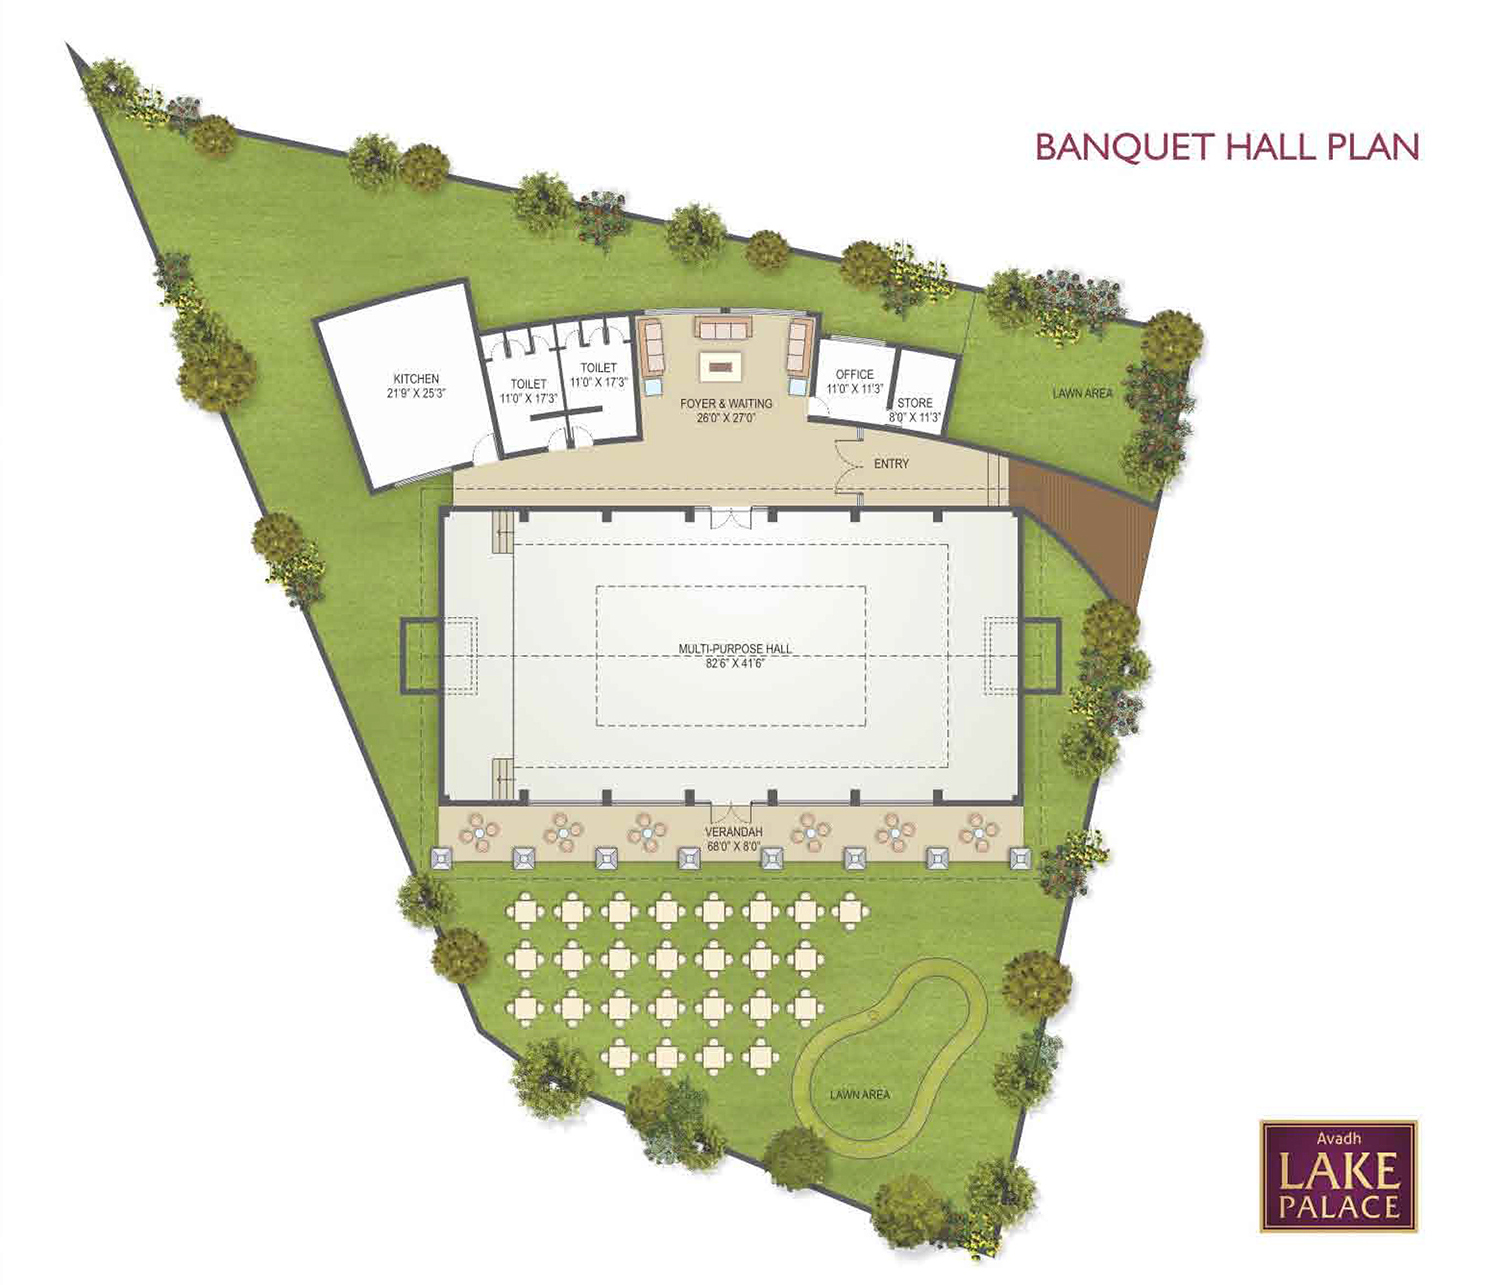 Avadh lake palace avadh group for Banquet hall floor plan